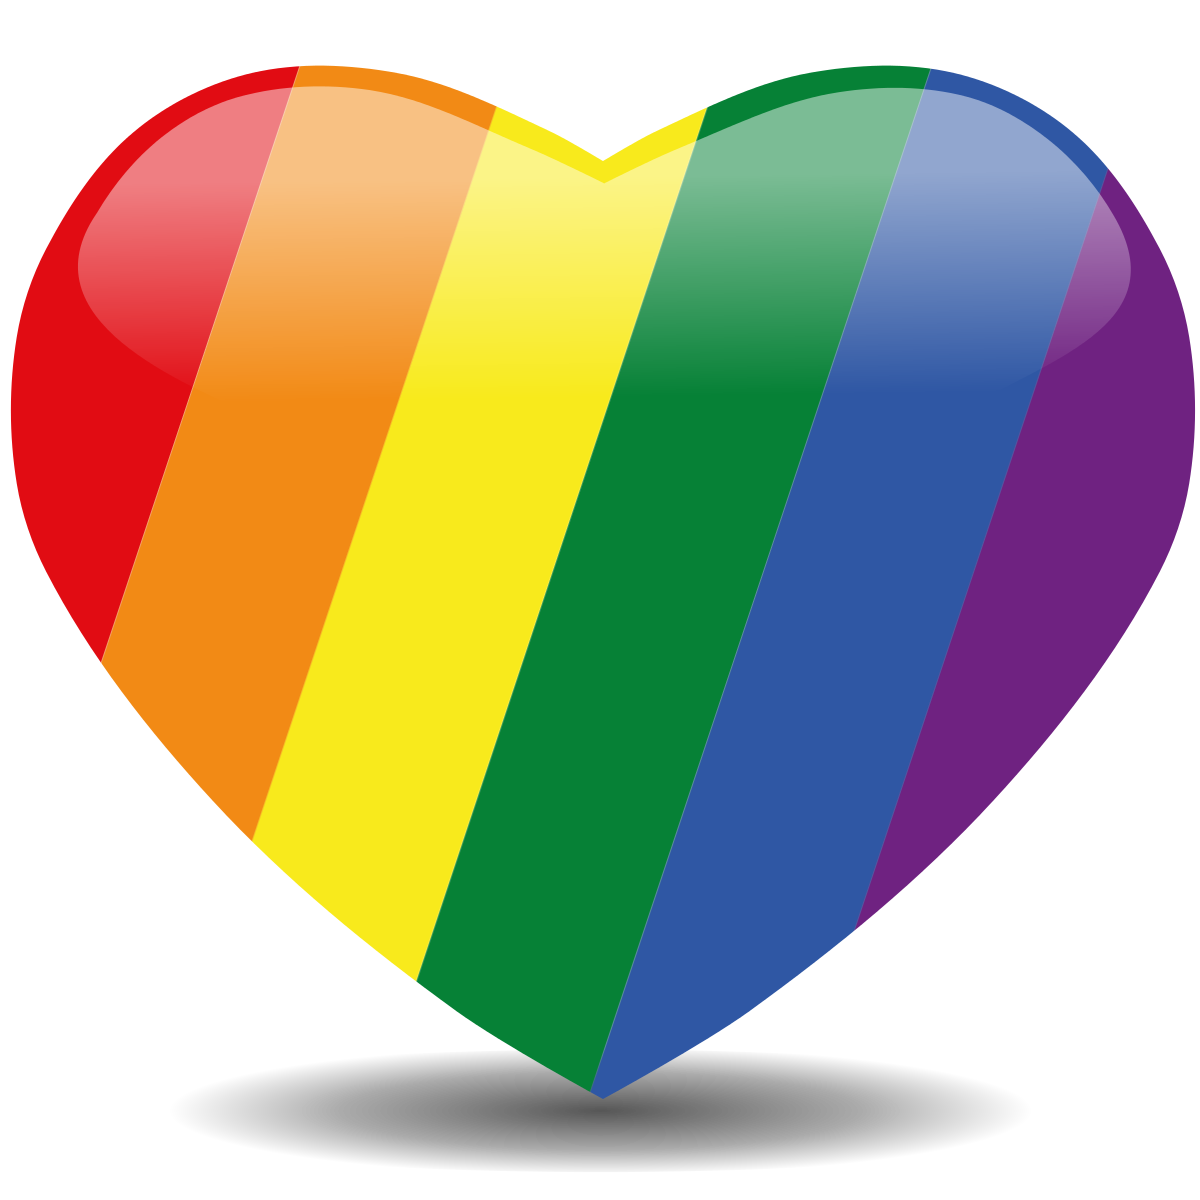 Colored crown with a heart inside clipart graphic royalty free library Rainbow heart | Show me the colors | Pinterest | Rainbows, Pride and ... graphic royalty free library